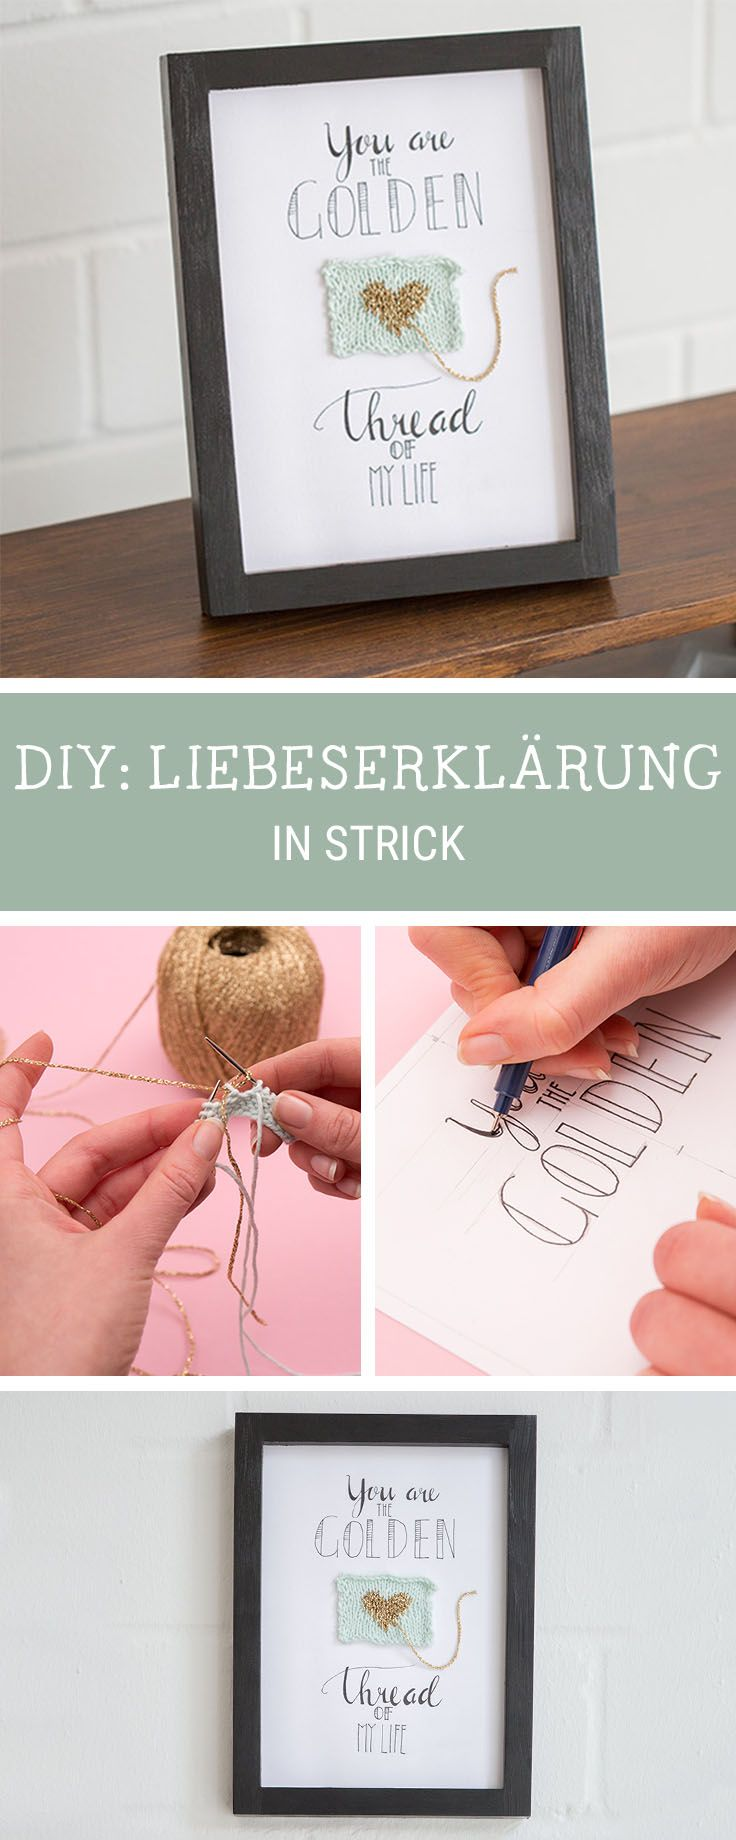 diy anleitung handlettering wandbild mit strickst ck selber machen via. Black Bedroom Furniture Sets. Home Design Ideas